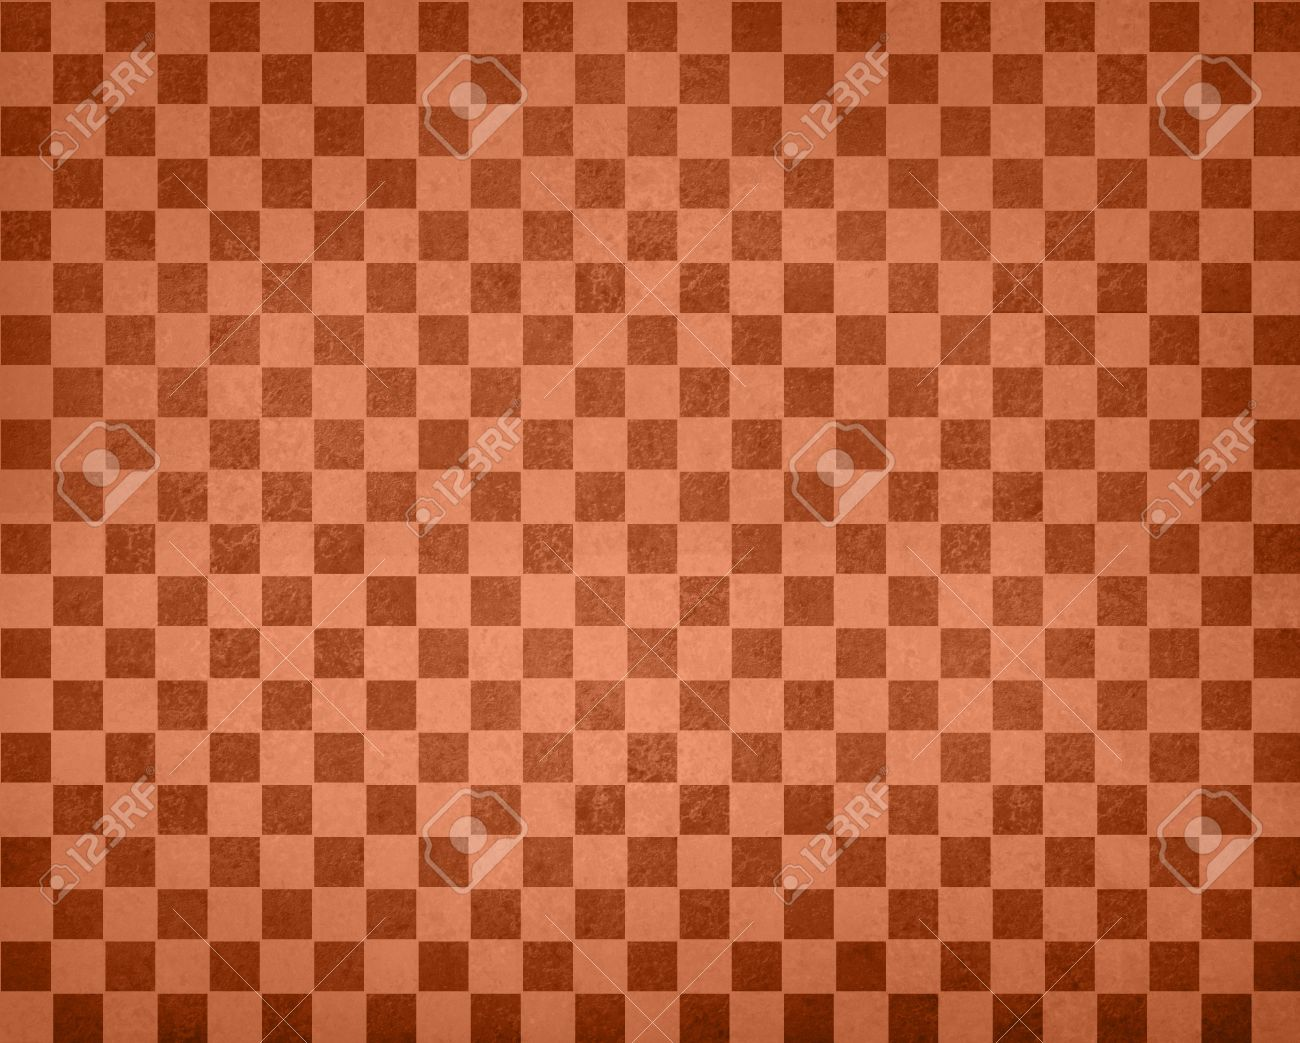 Vintage Checkered Background Pattern Rows Of Brown Orange Squares Stock Photo Picture And Royalty Free Image Image 56270005